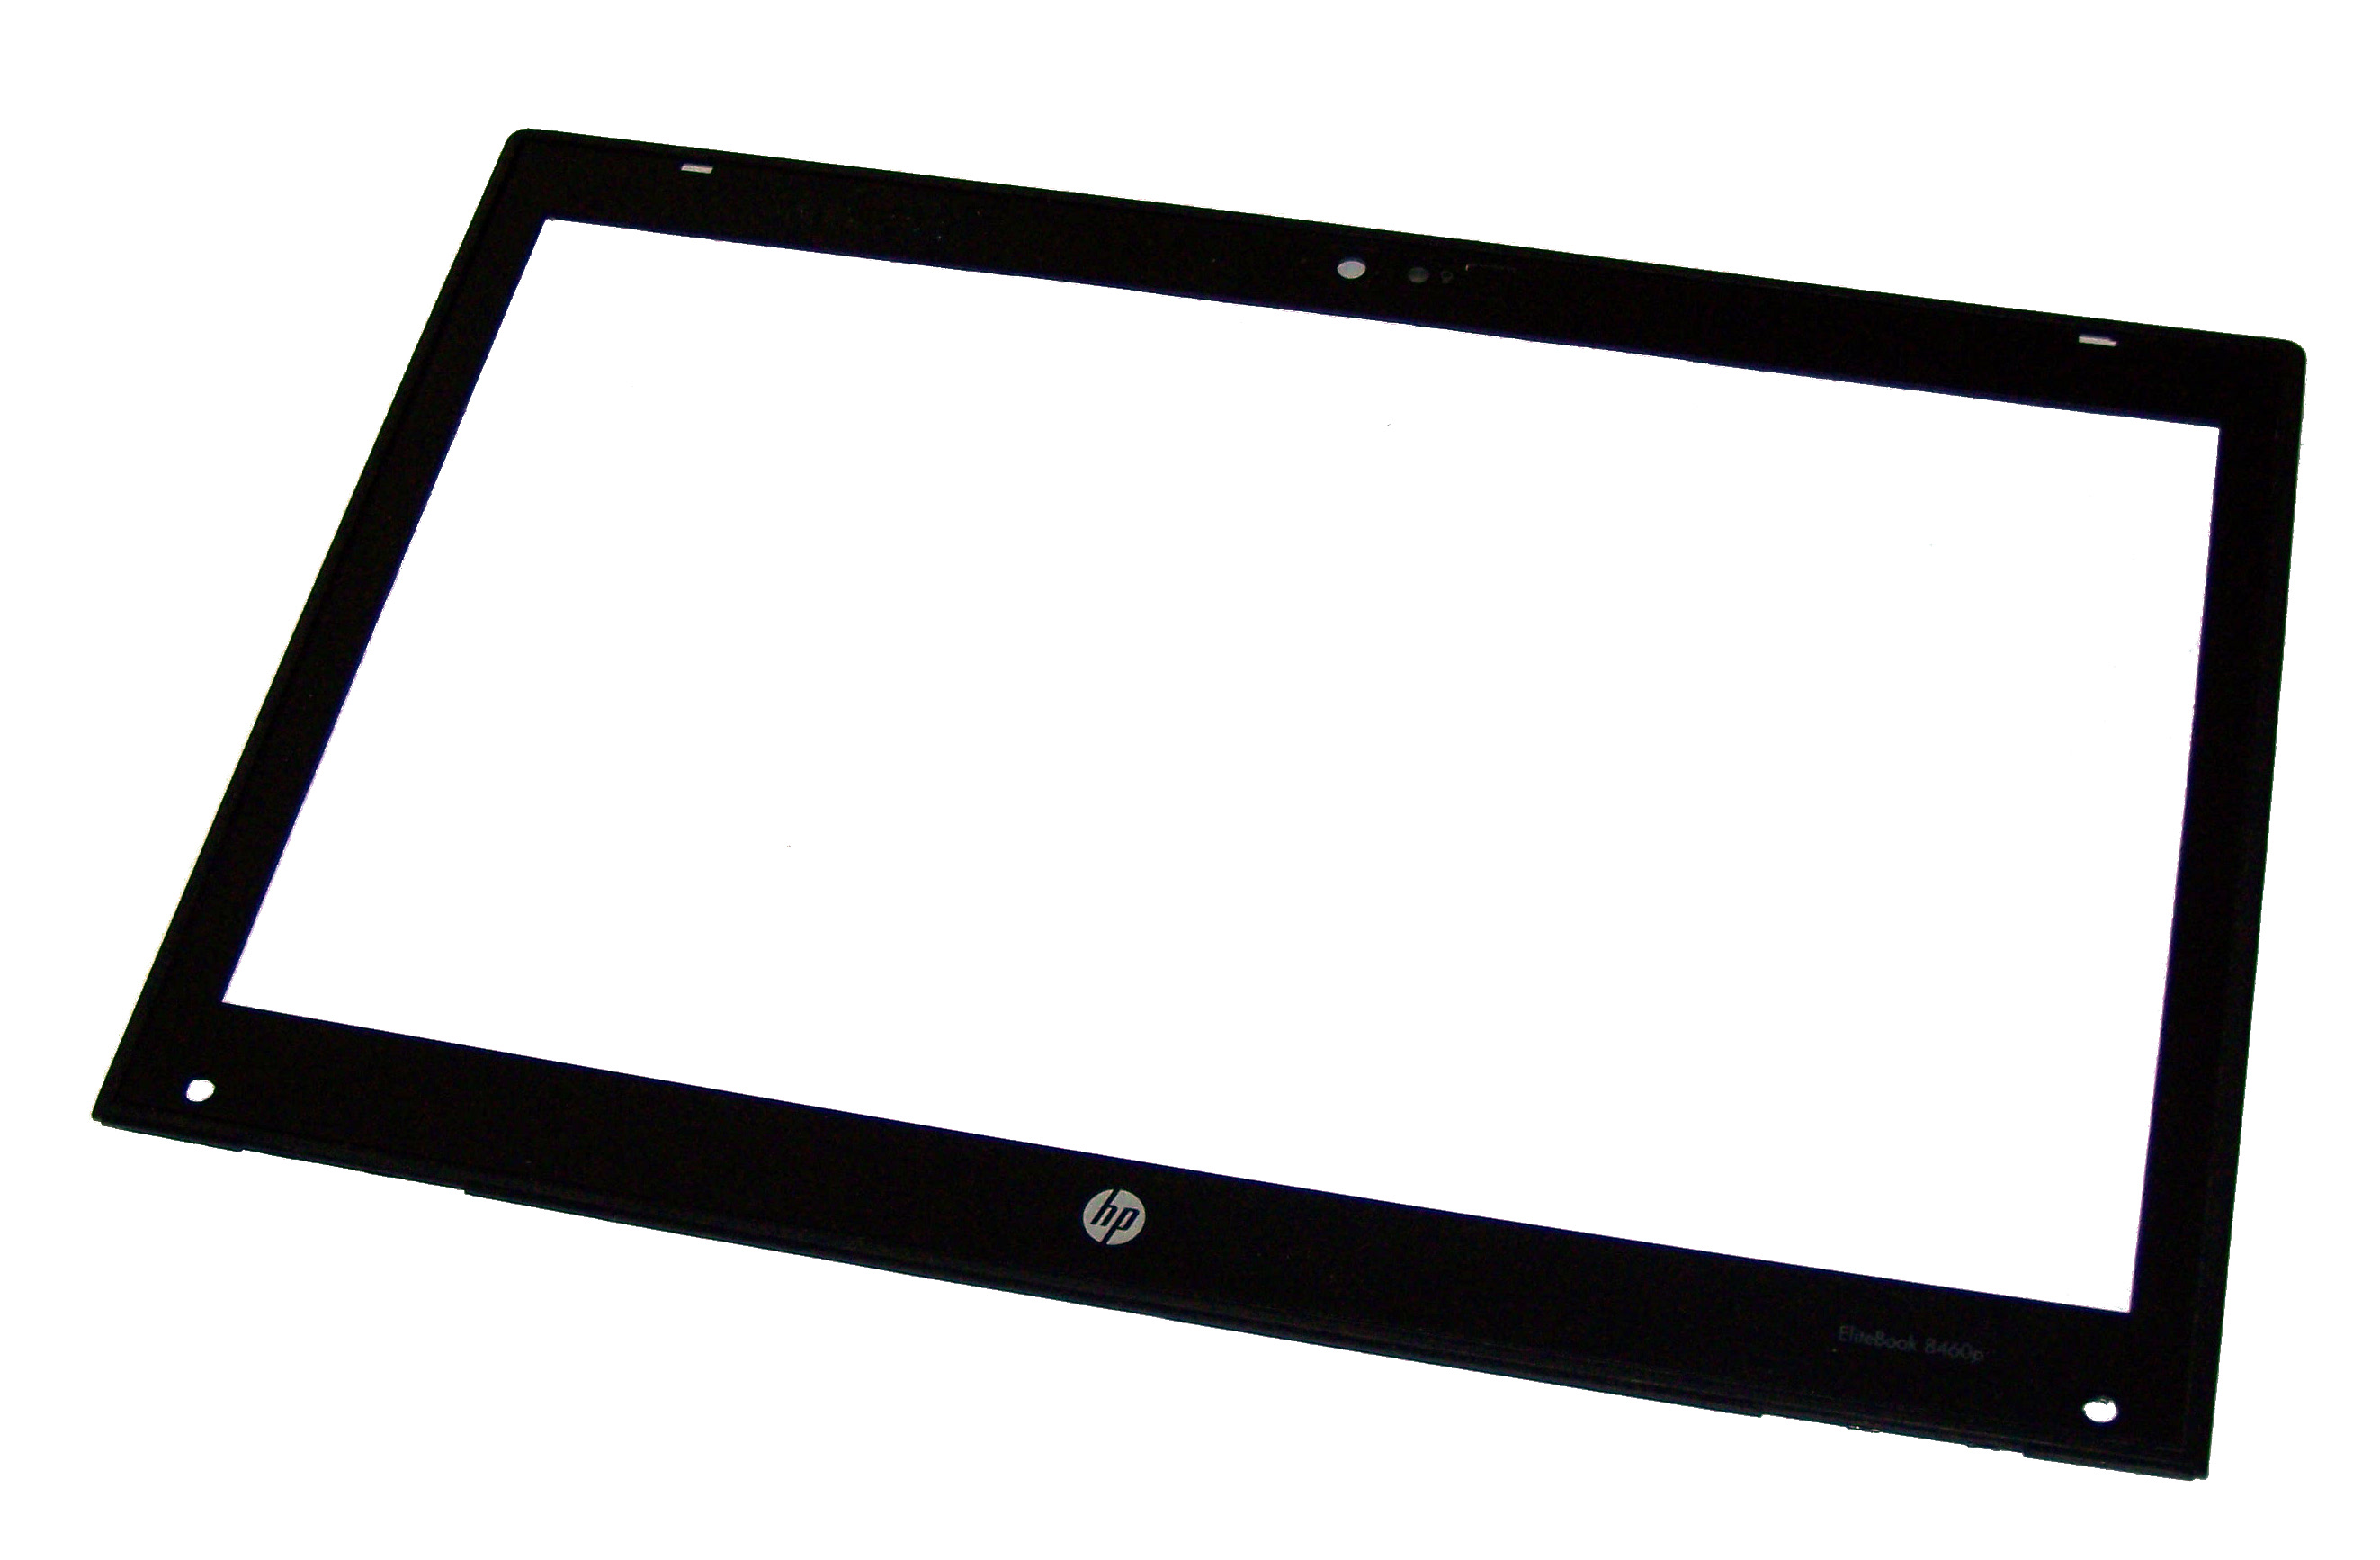 HP 643919-001 EliteBook 8460p LCD Trim Bezel with Webcam Lens | 6070B0480301 Thumbnail 1